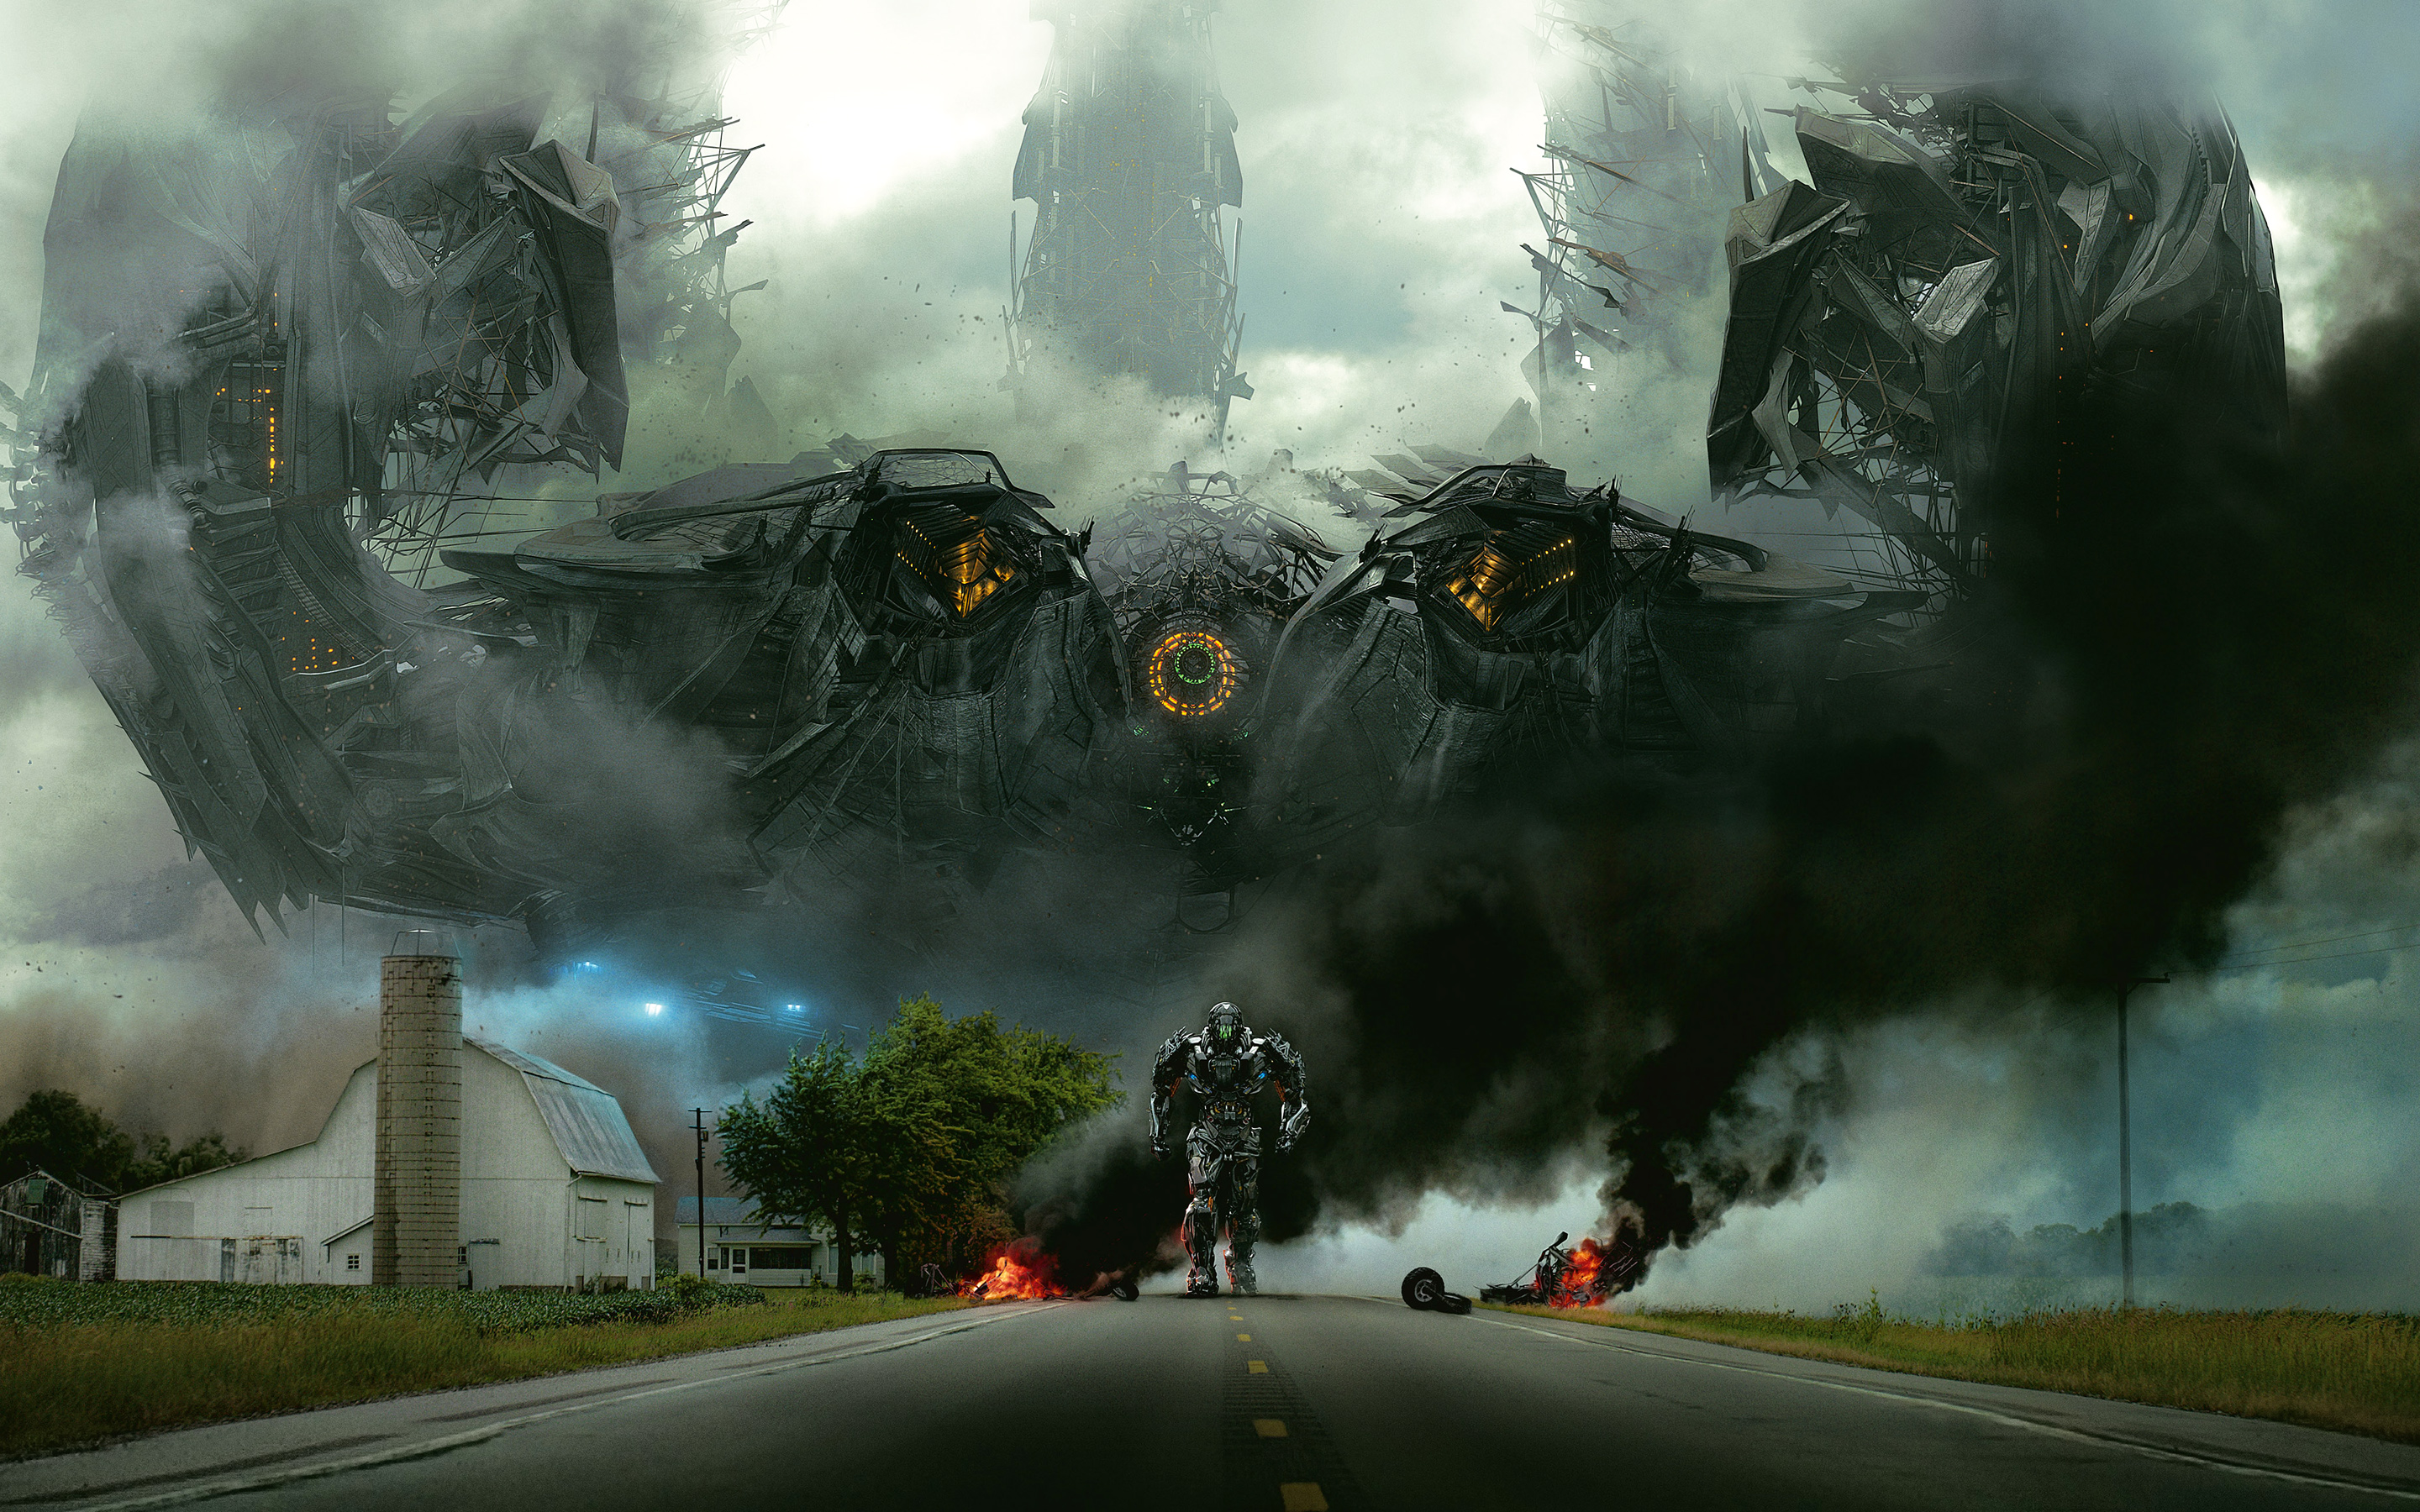 transformers: age of extinction hd wallpaper | background image